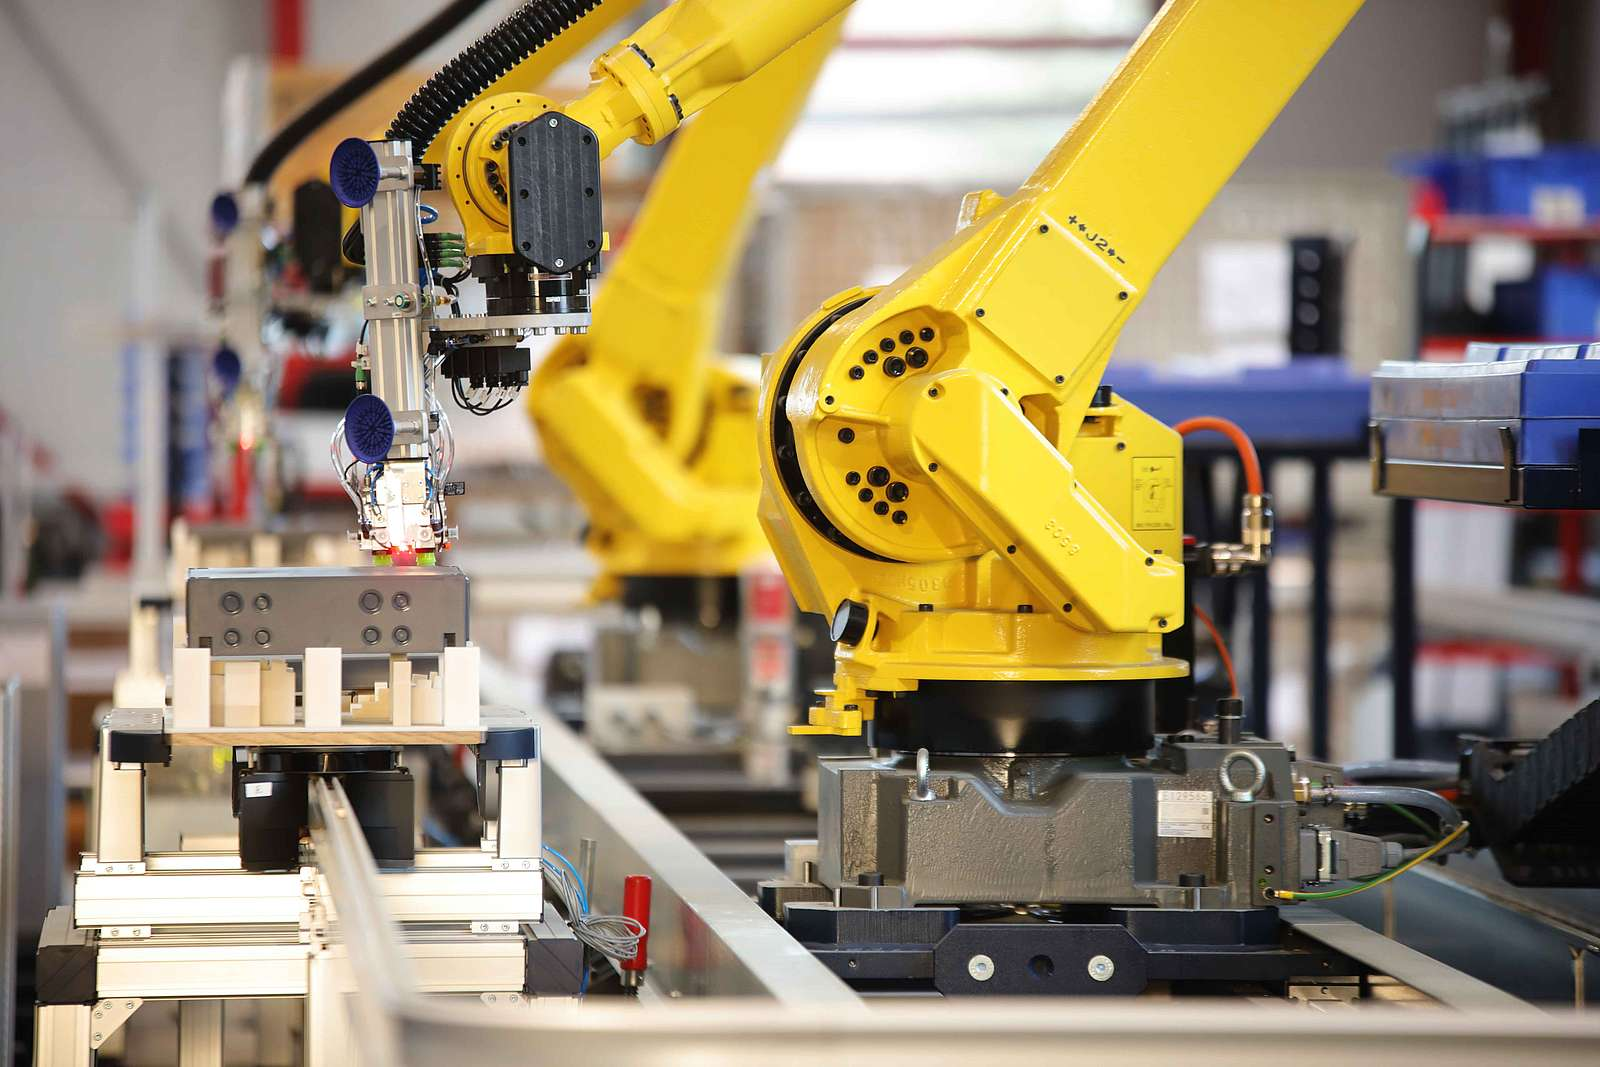 Robot automated provisioning on workpiece carriers